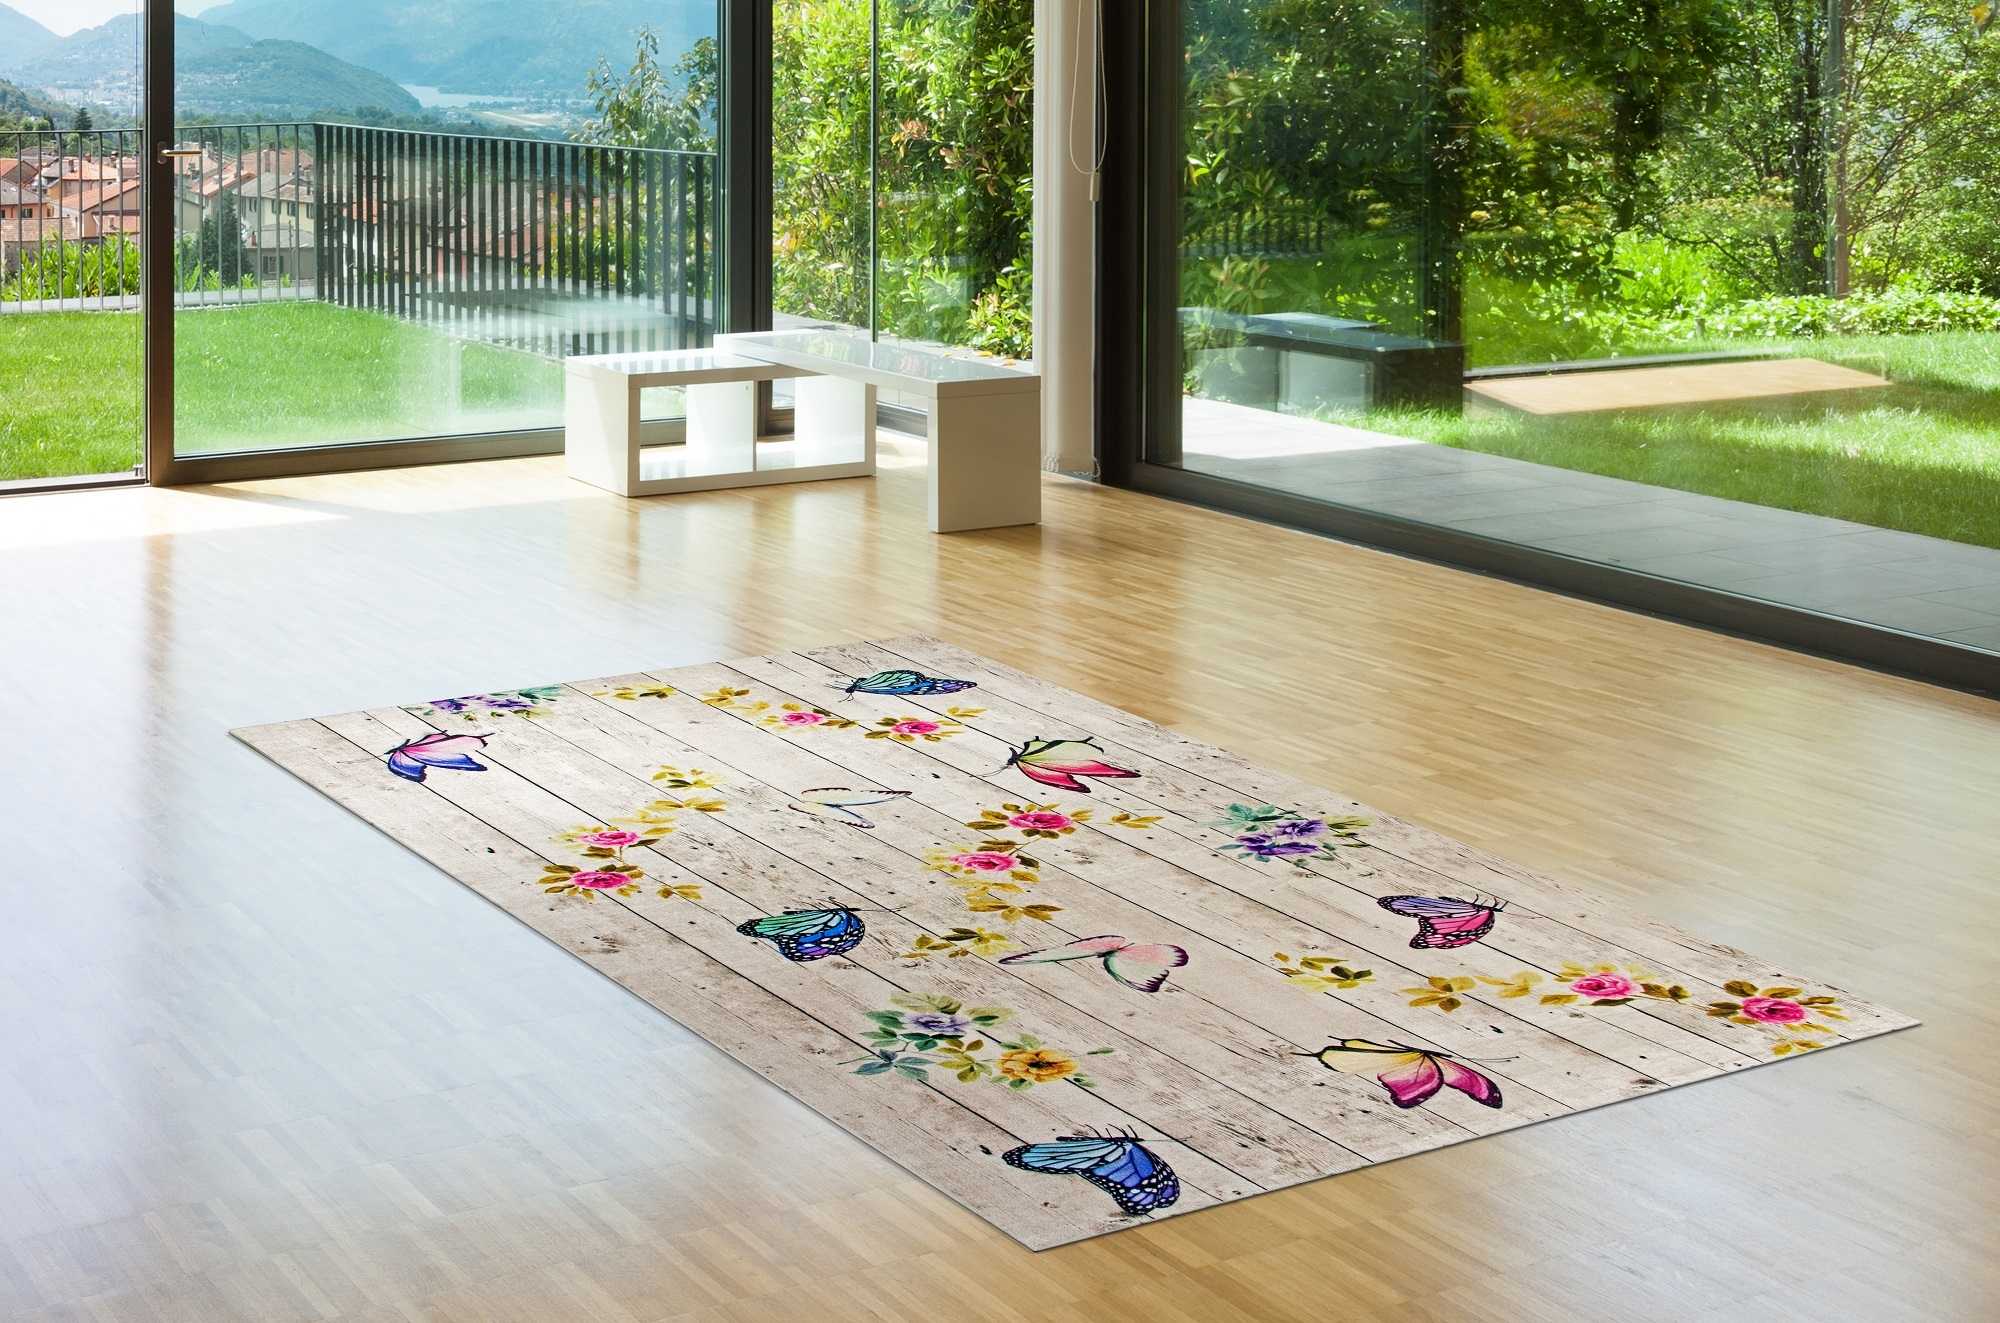 Covor Butterflowers 5016 Multicolor, 160 x 230 cm imagine